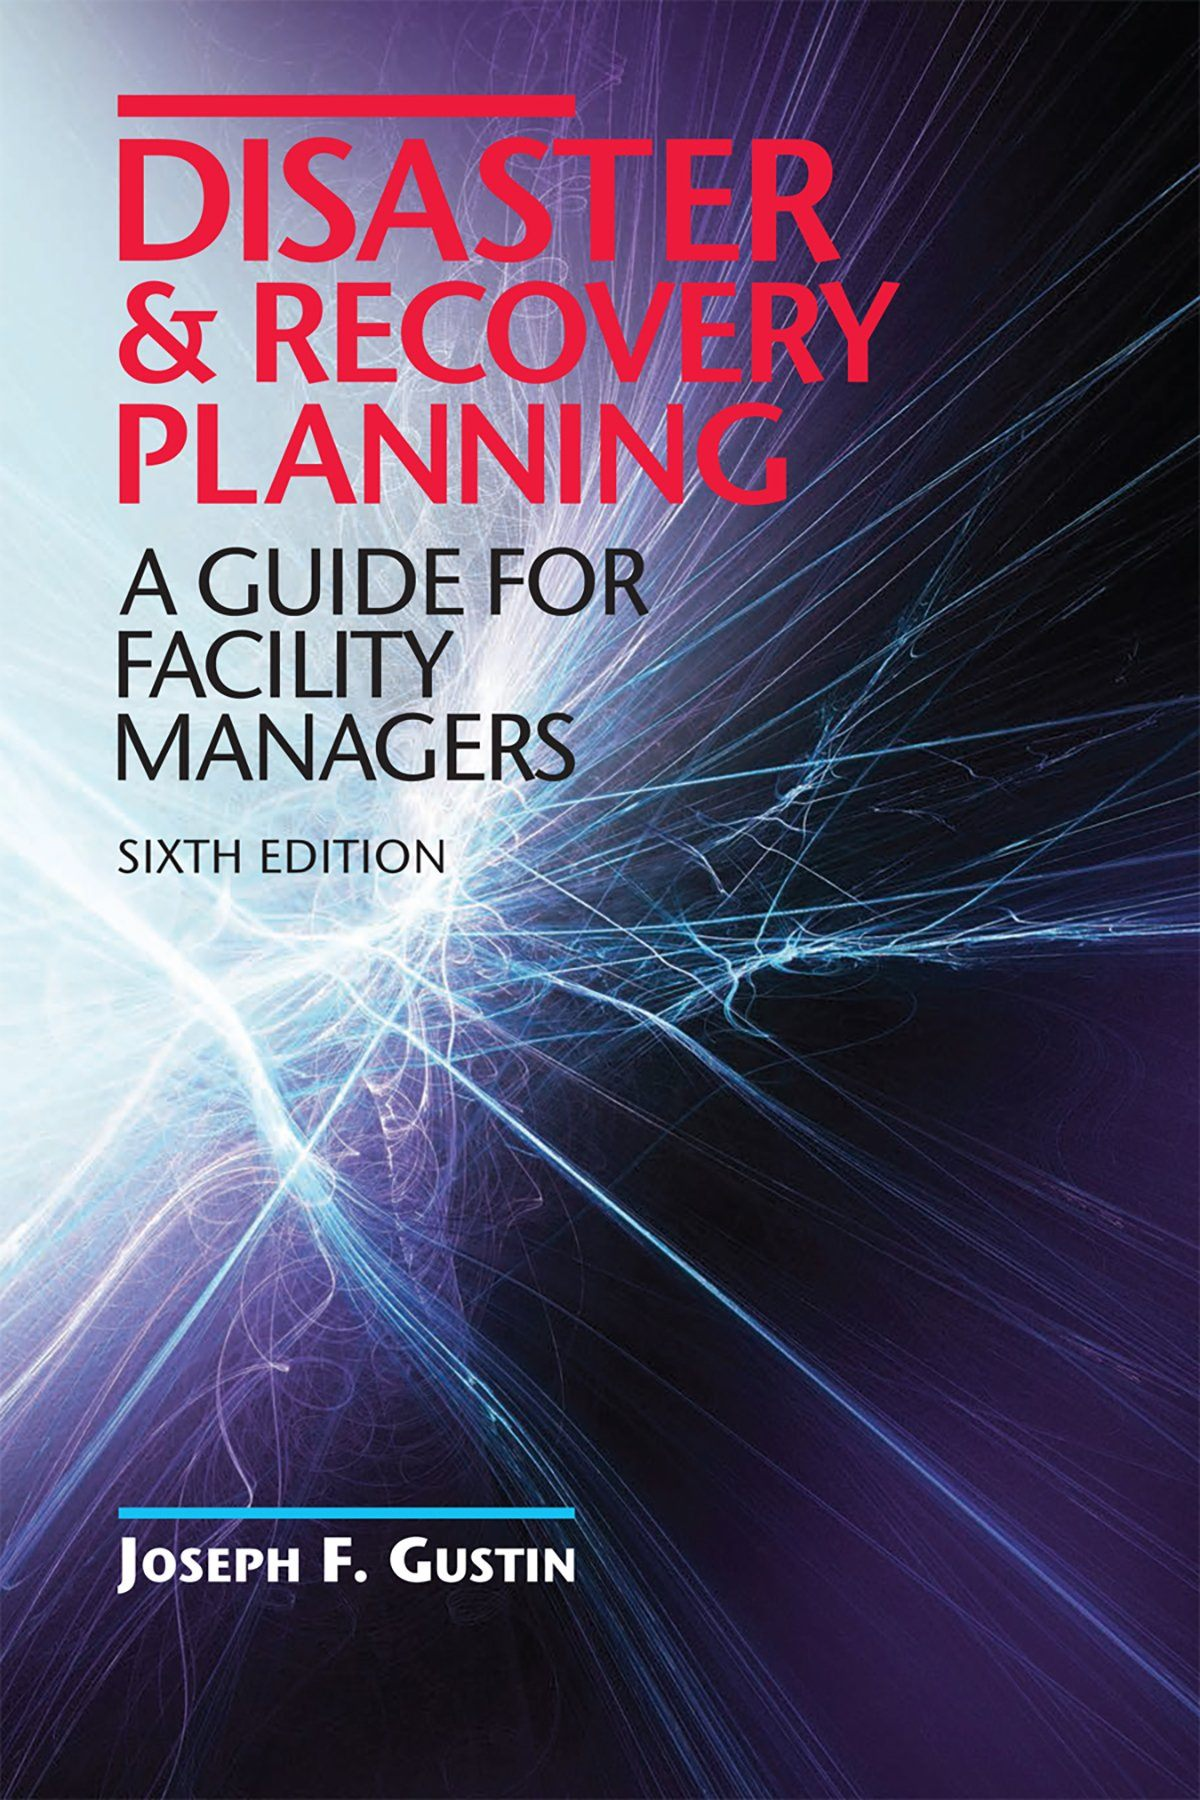 disaster recovery planning a guide for facility managers 5th